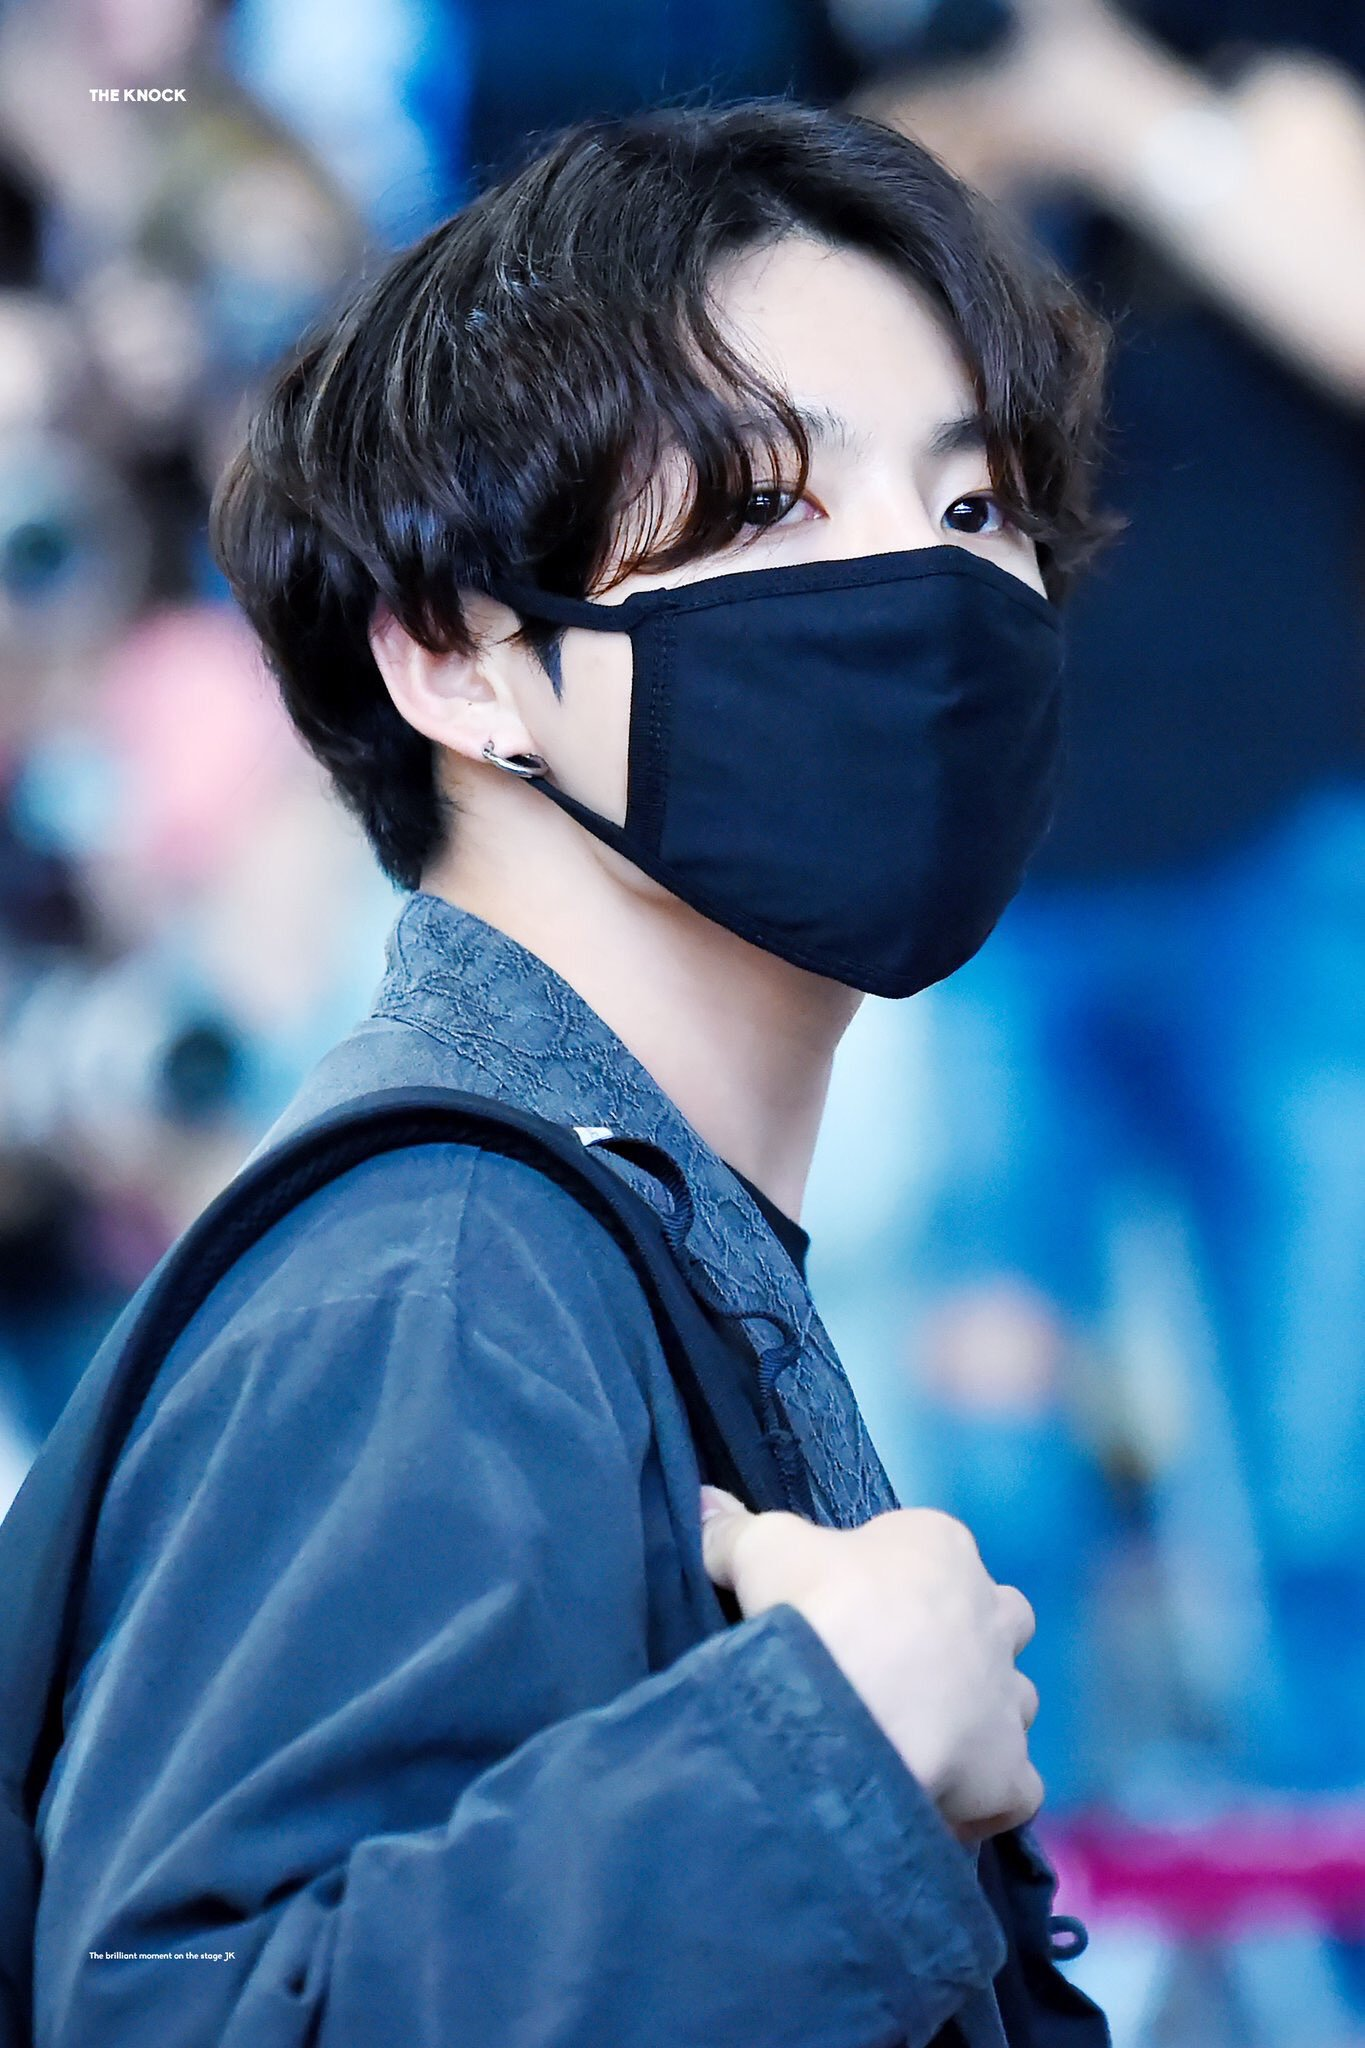 BTS's JungKook Spotted Wearing A Modernized Hanbok At The Airport